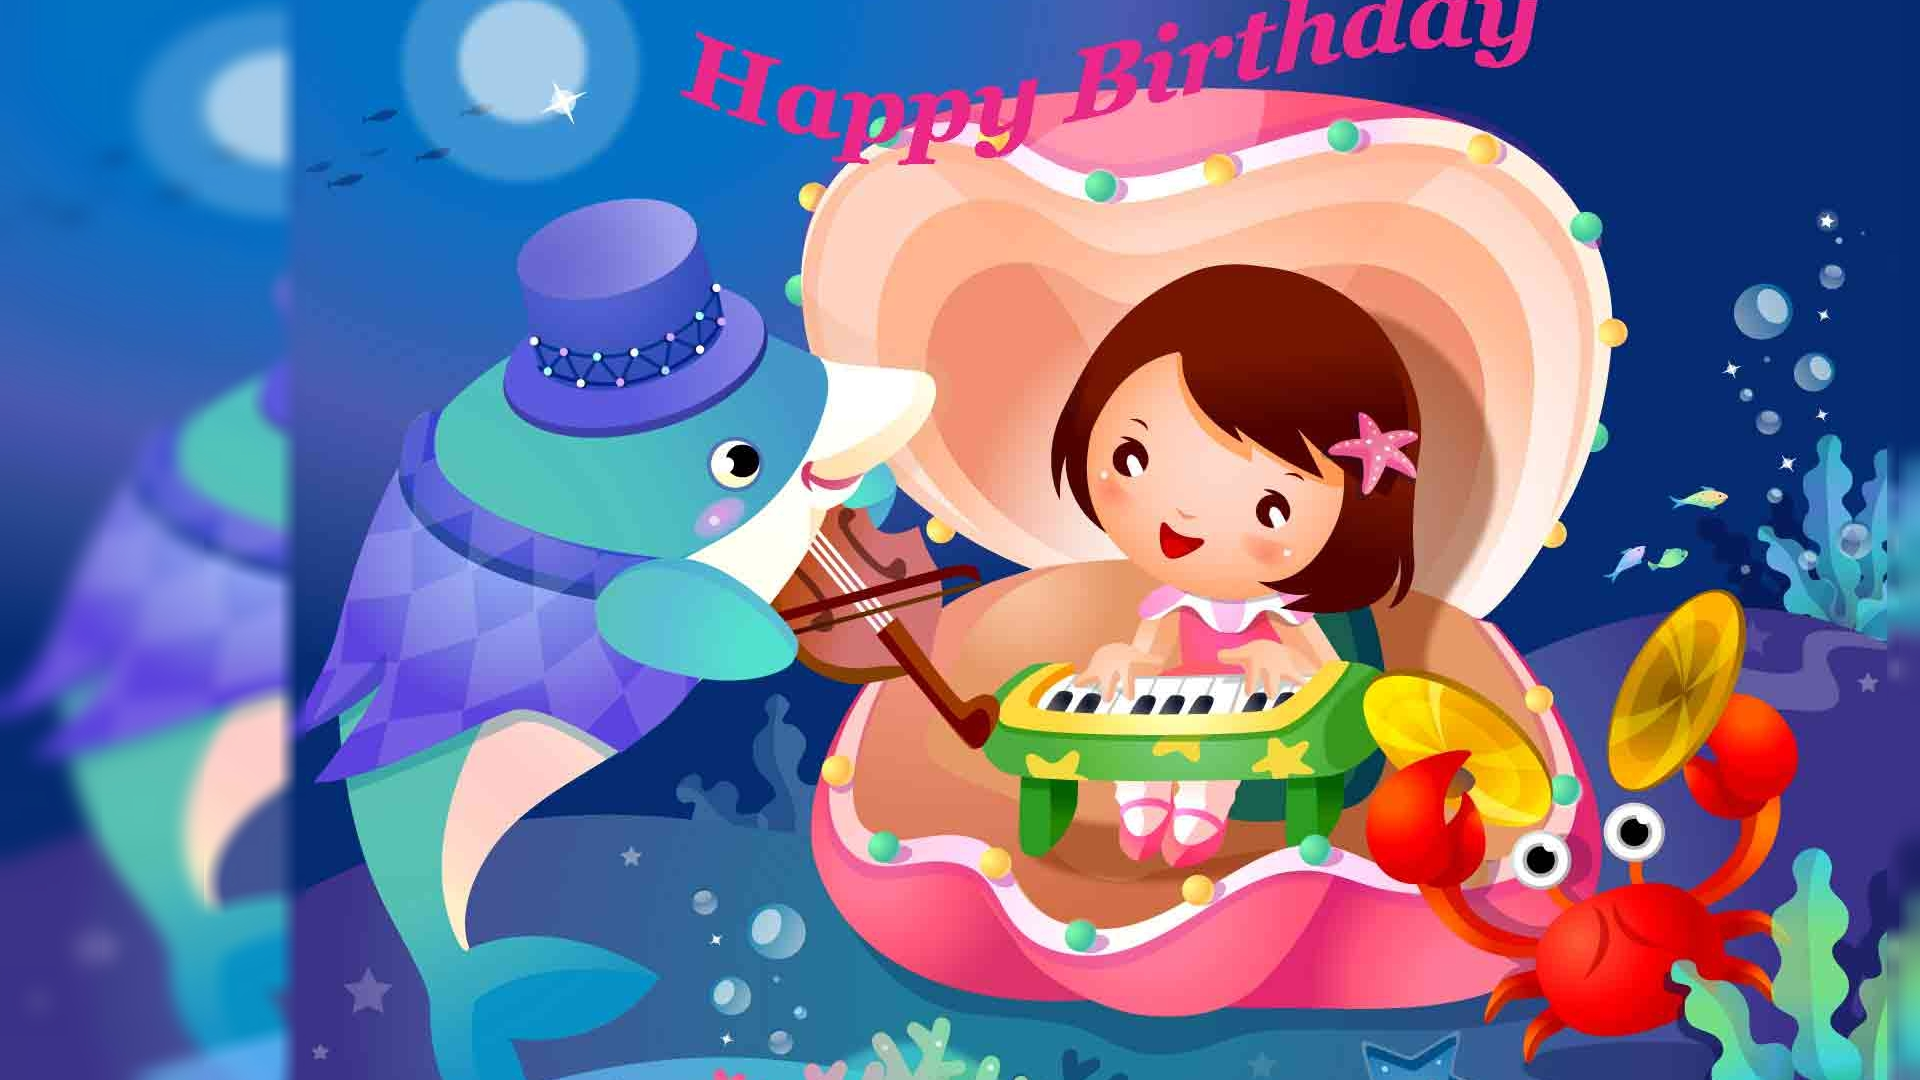 Happy Birthday Wallpapers Free Download Happy Birthday Animated Images Hd 826608 Hd Wallpaper Backgrounds Download